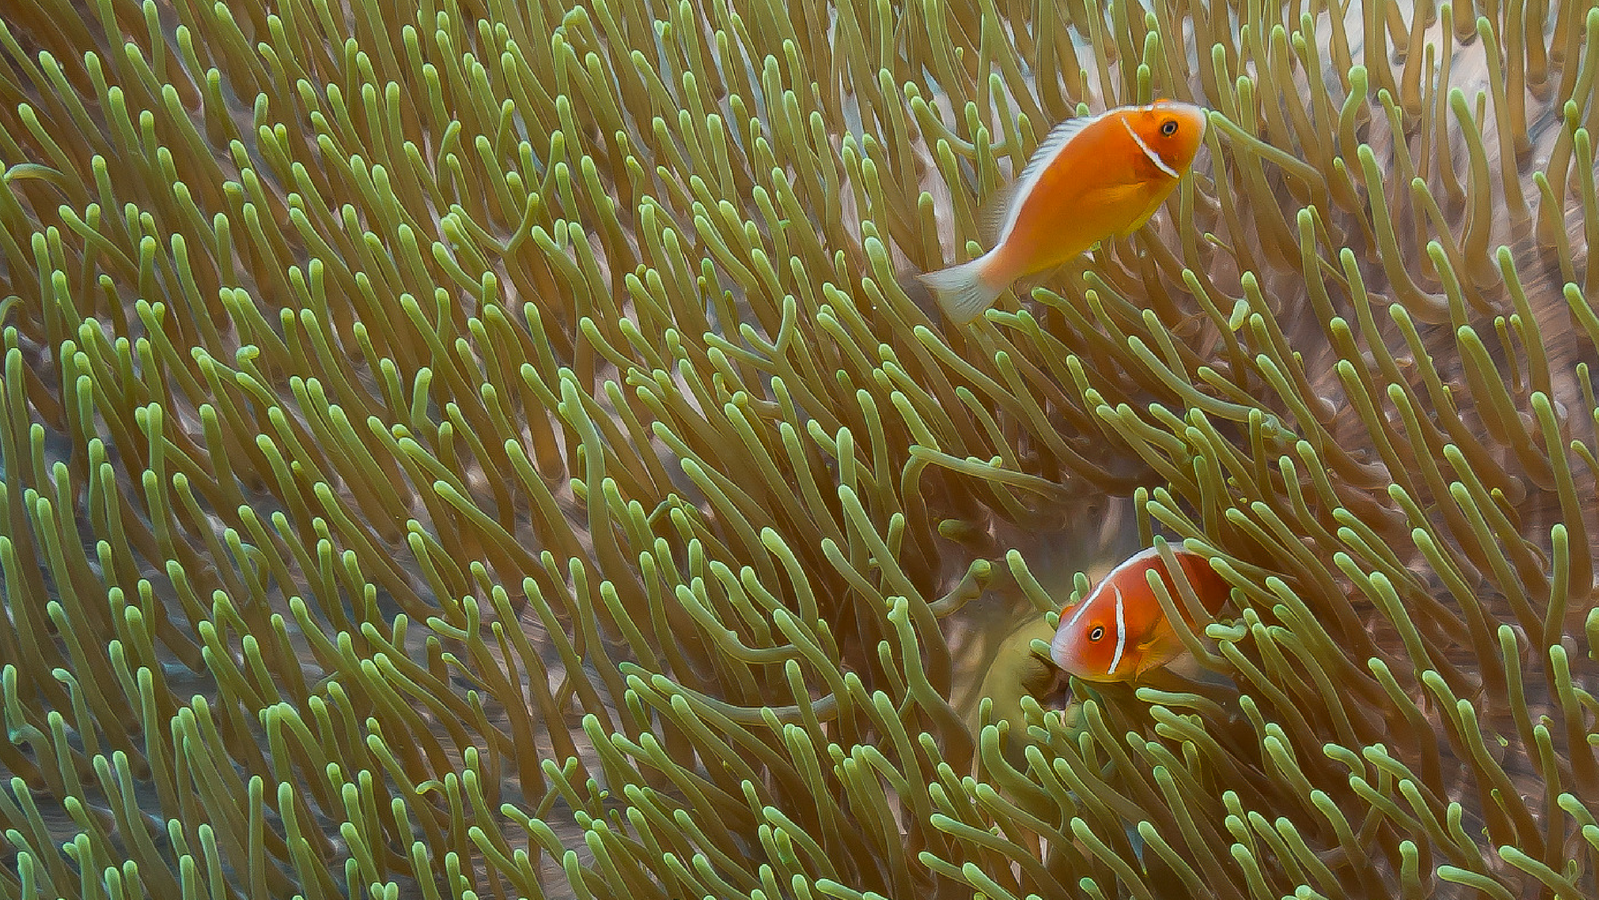 Fish in corals